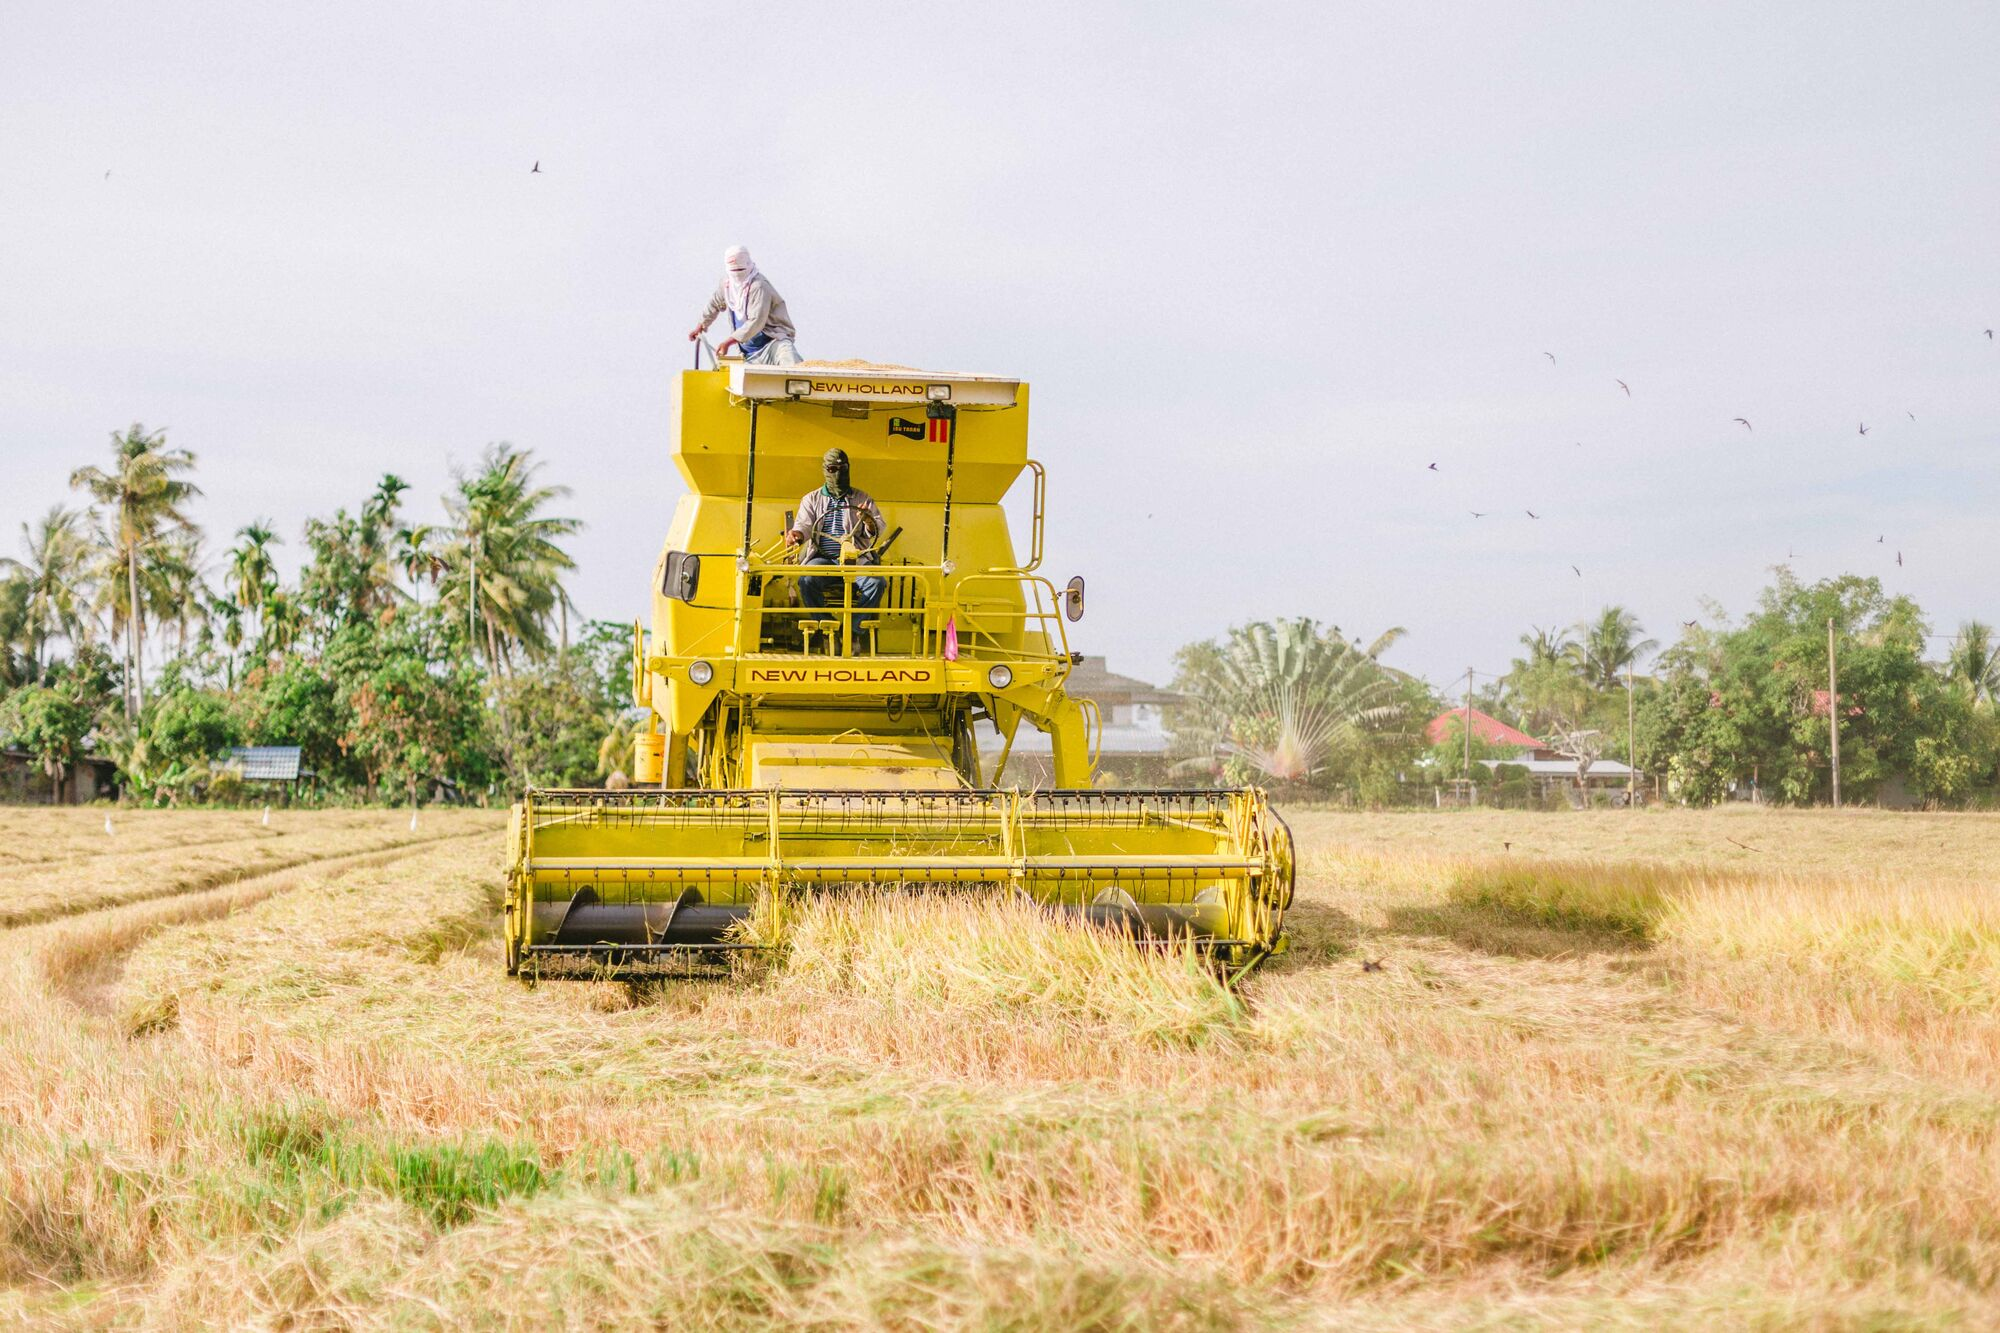 List of New Holland Harvesting Machinery | Tractor & Construction